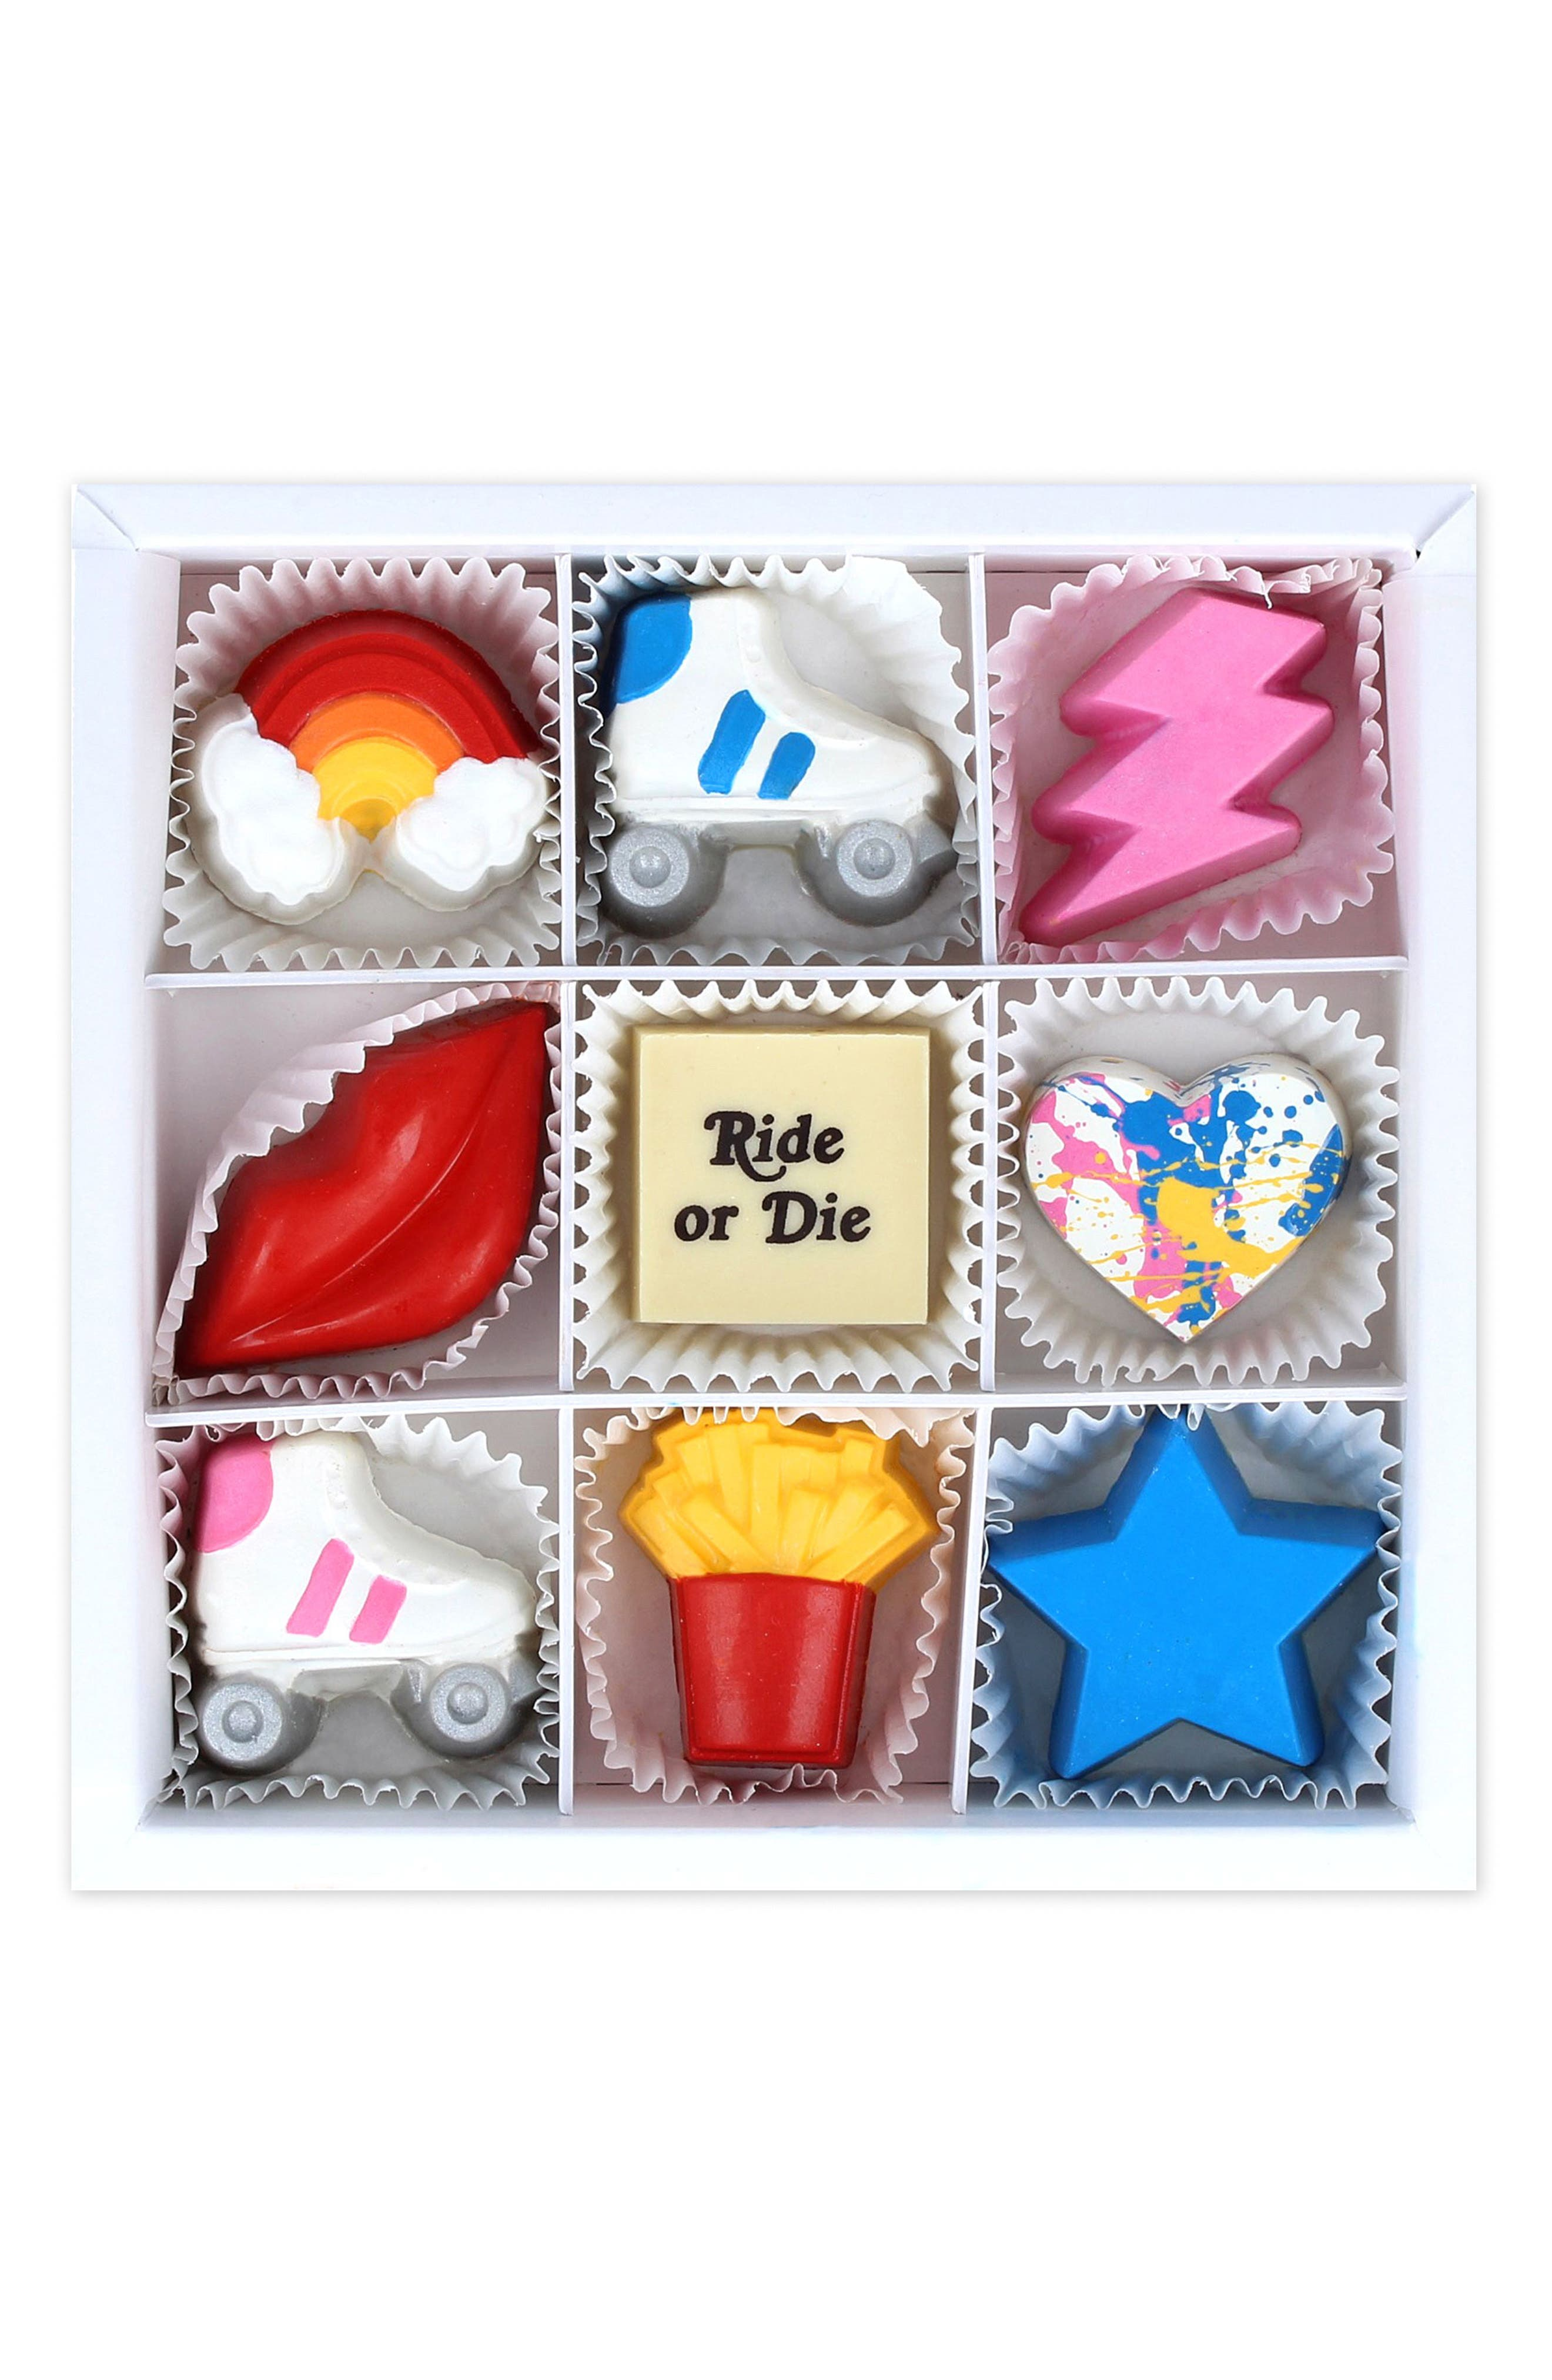 Ride or Die 9-Piece Chocolate Set,                             Main thumbnail 1, color,                             WHITE